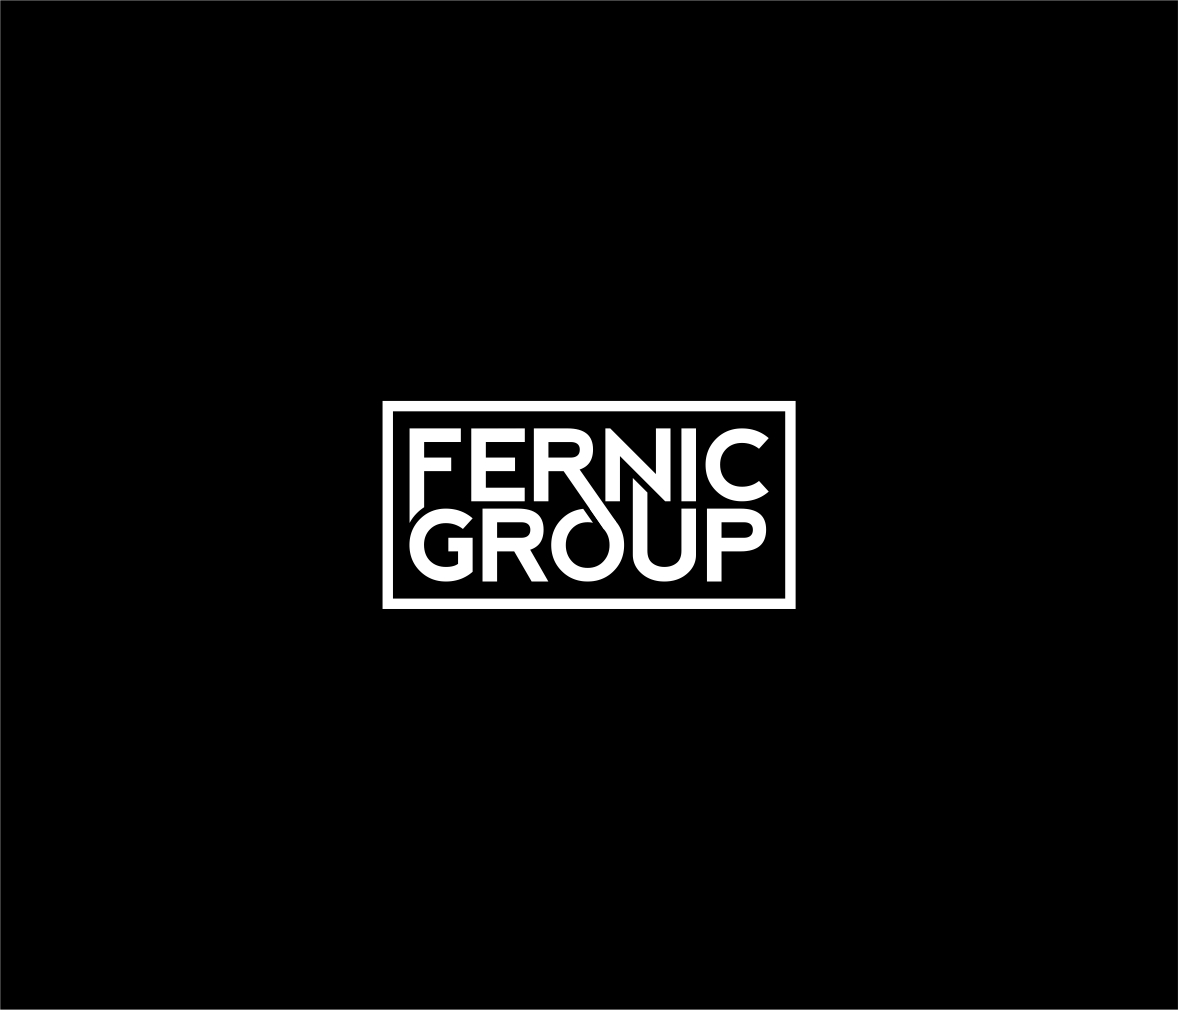 Logo Design by haidu - Entry No. 15 in the Logo Design Contest Artistic Logo Design for Fernic Goup.